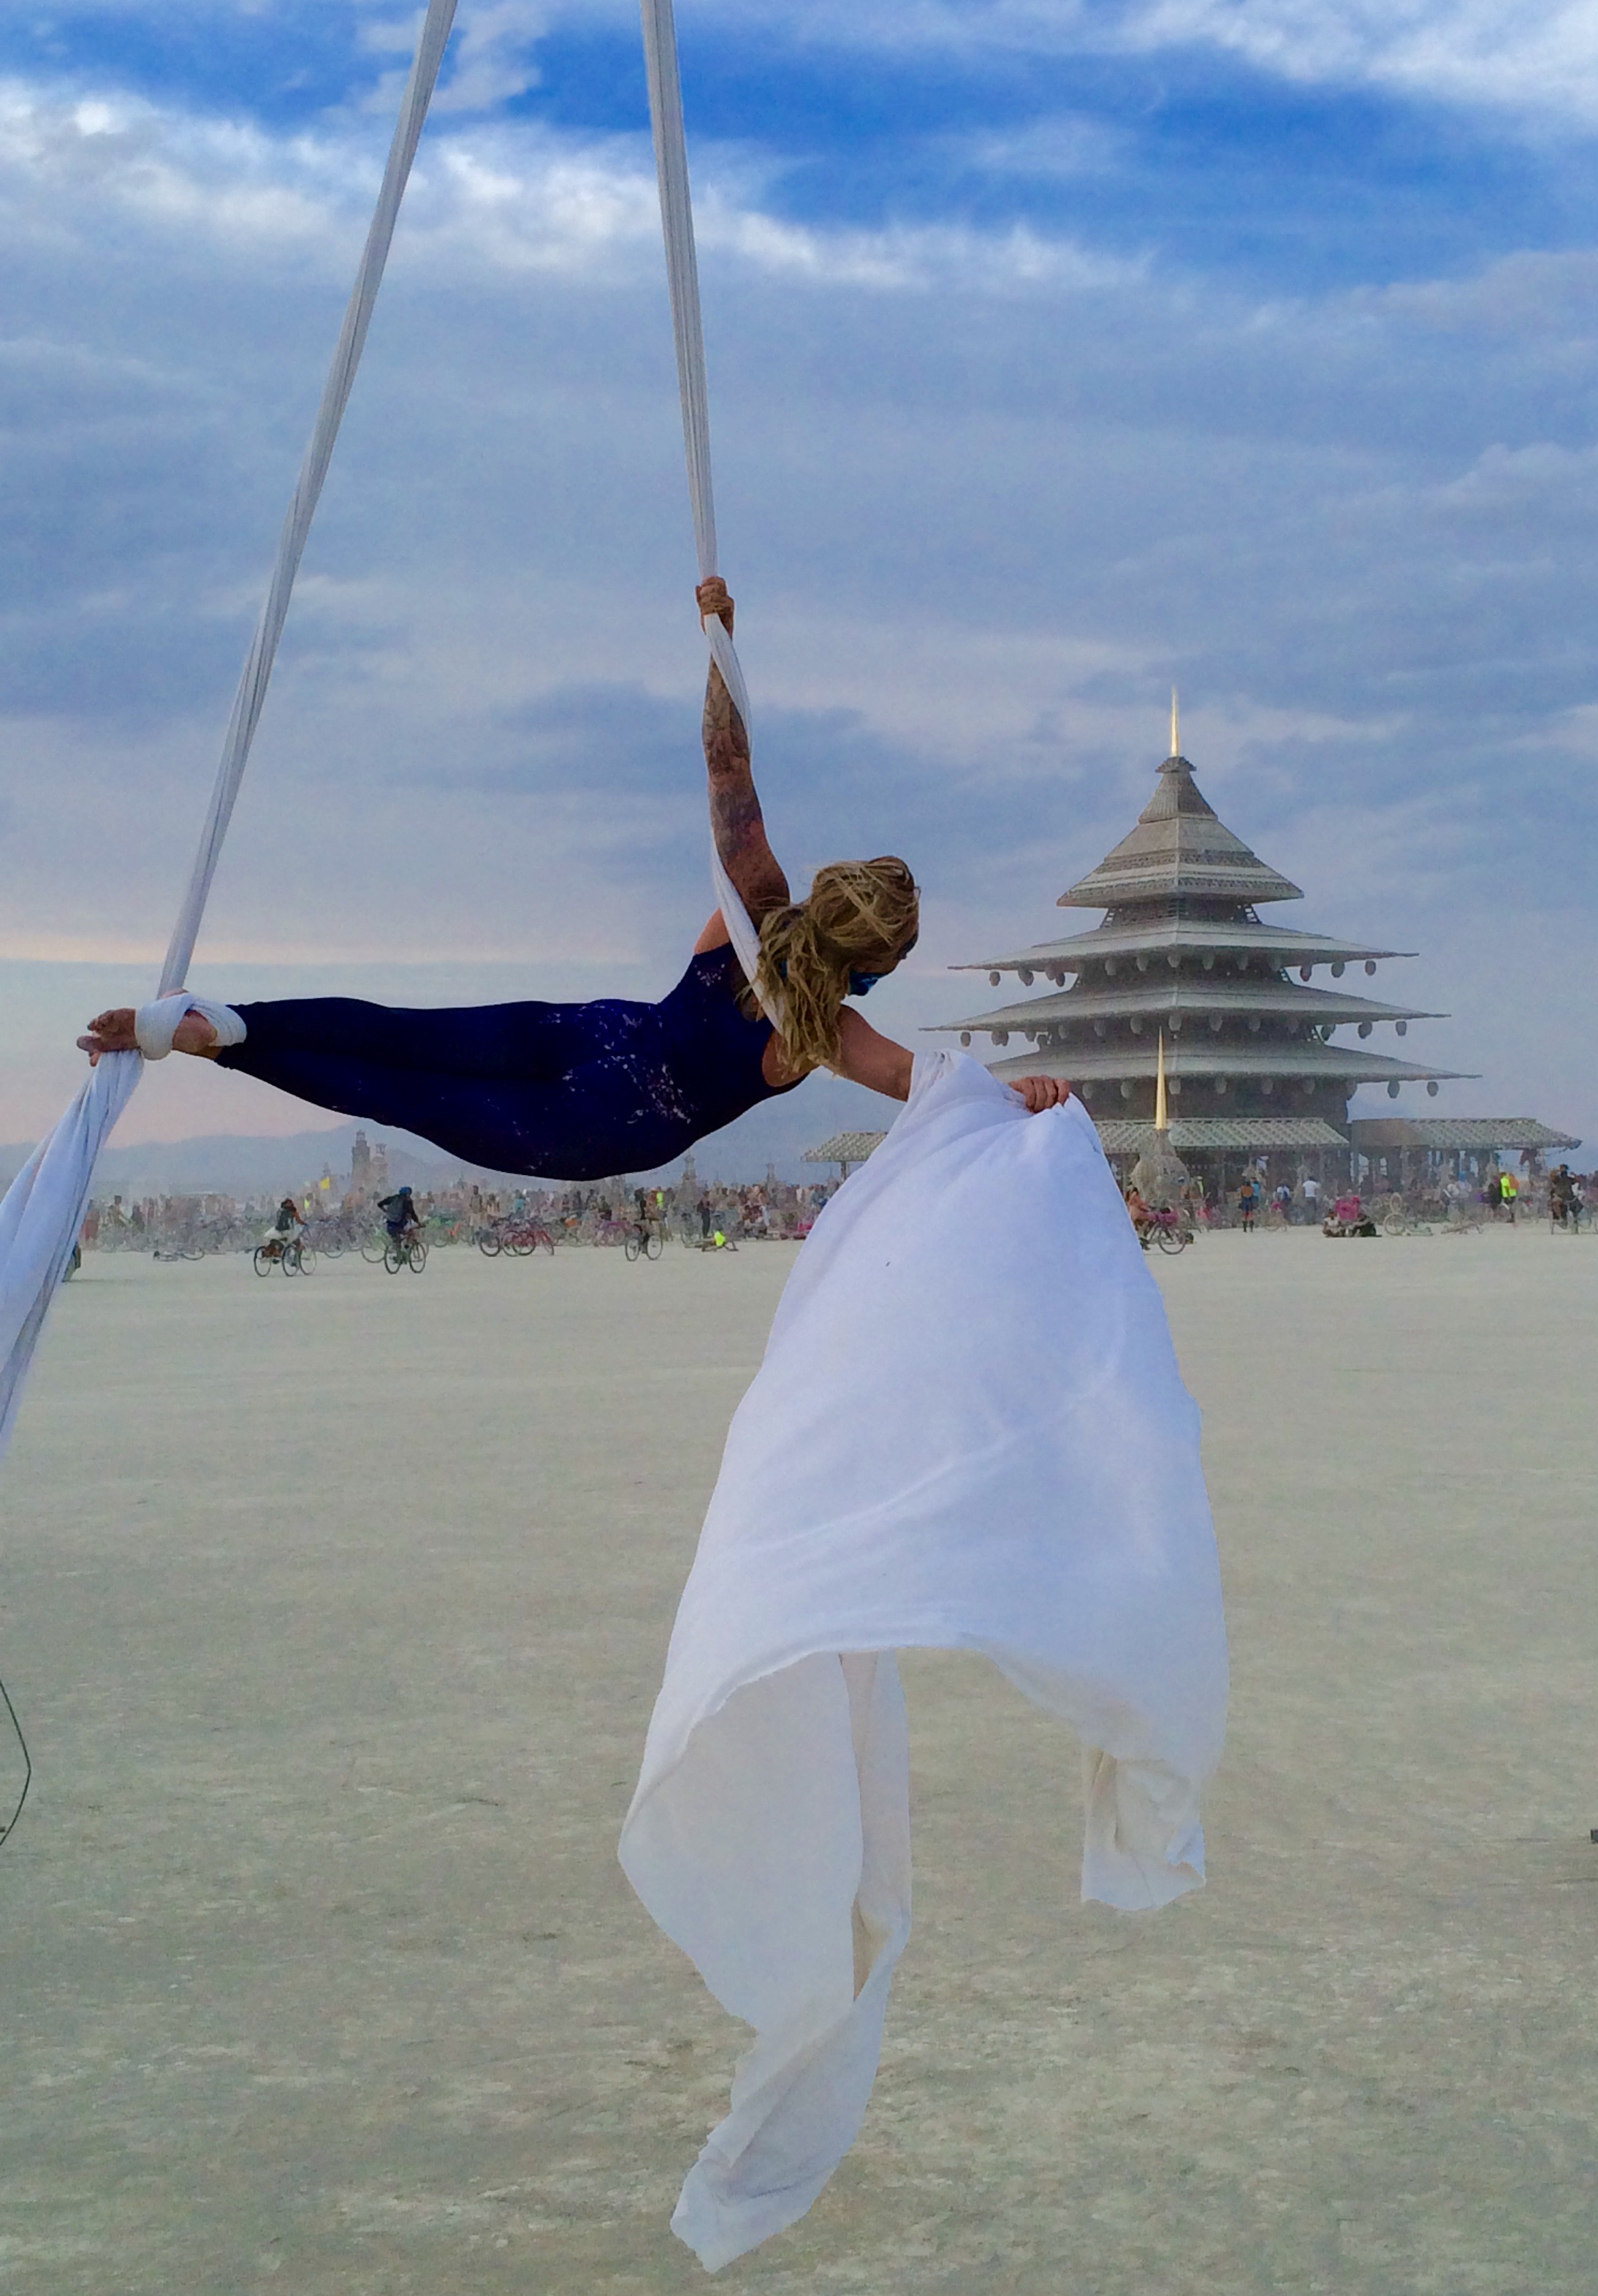 Aerial Performance at the Temple, Burning Man 2016